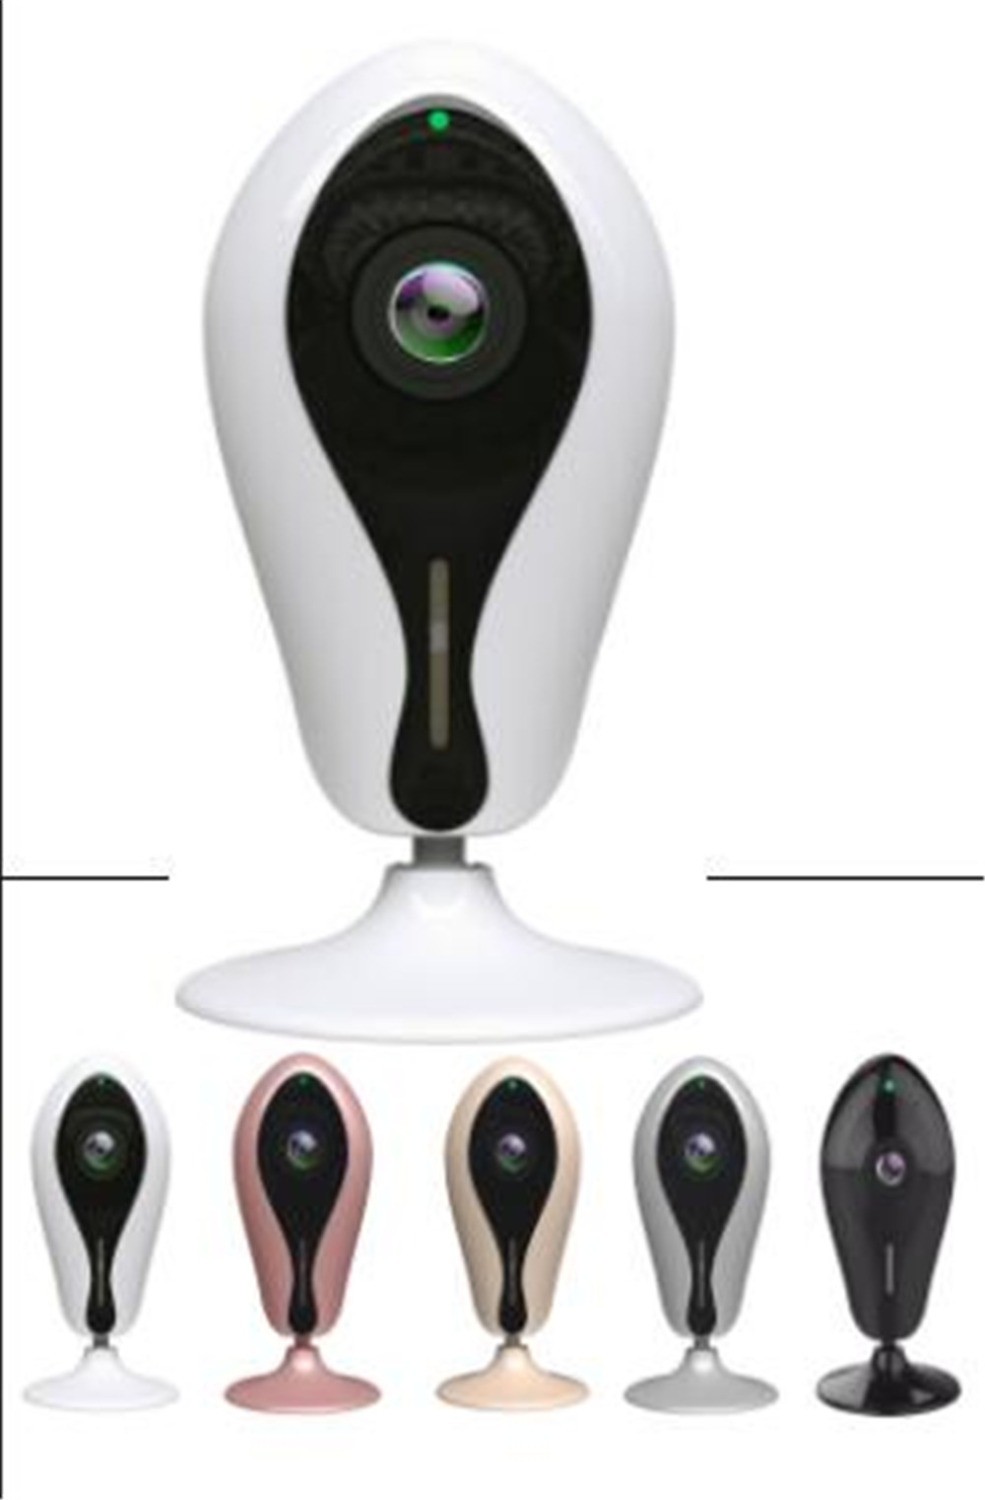 180 Degree Panorama Camera Fisheye Lens WIFI IP Camera Motion Detection Camcorder 720/960/1080p Optional 180 Degree Panorama Camera Fisheye Lens WIFI IP Camera Motion Detection Camcorder 720/960/1080p Optional